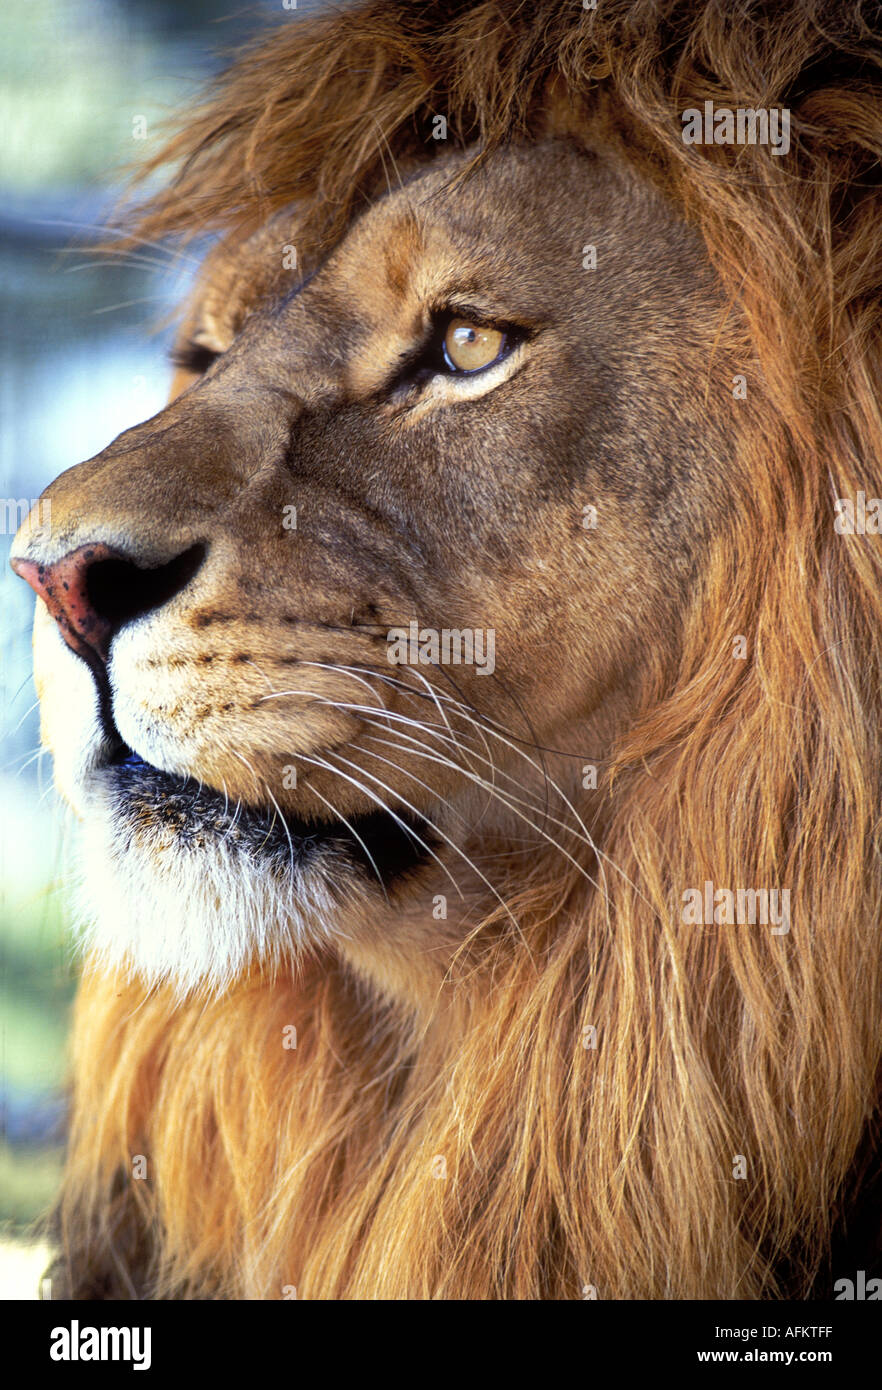 Ml2 49 Intent Male Lion Face Stock Photo Alamy